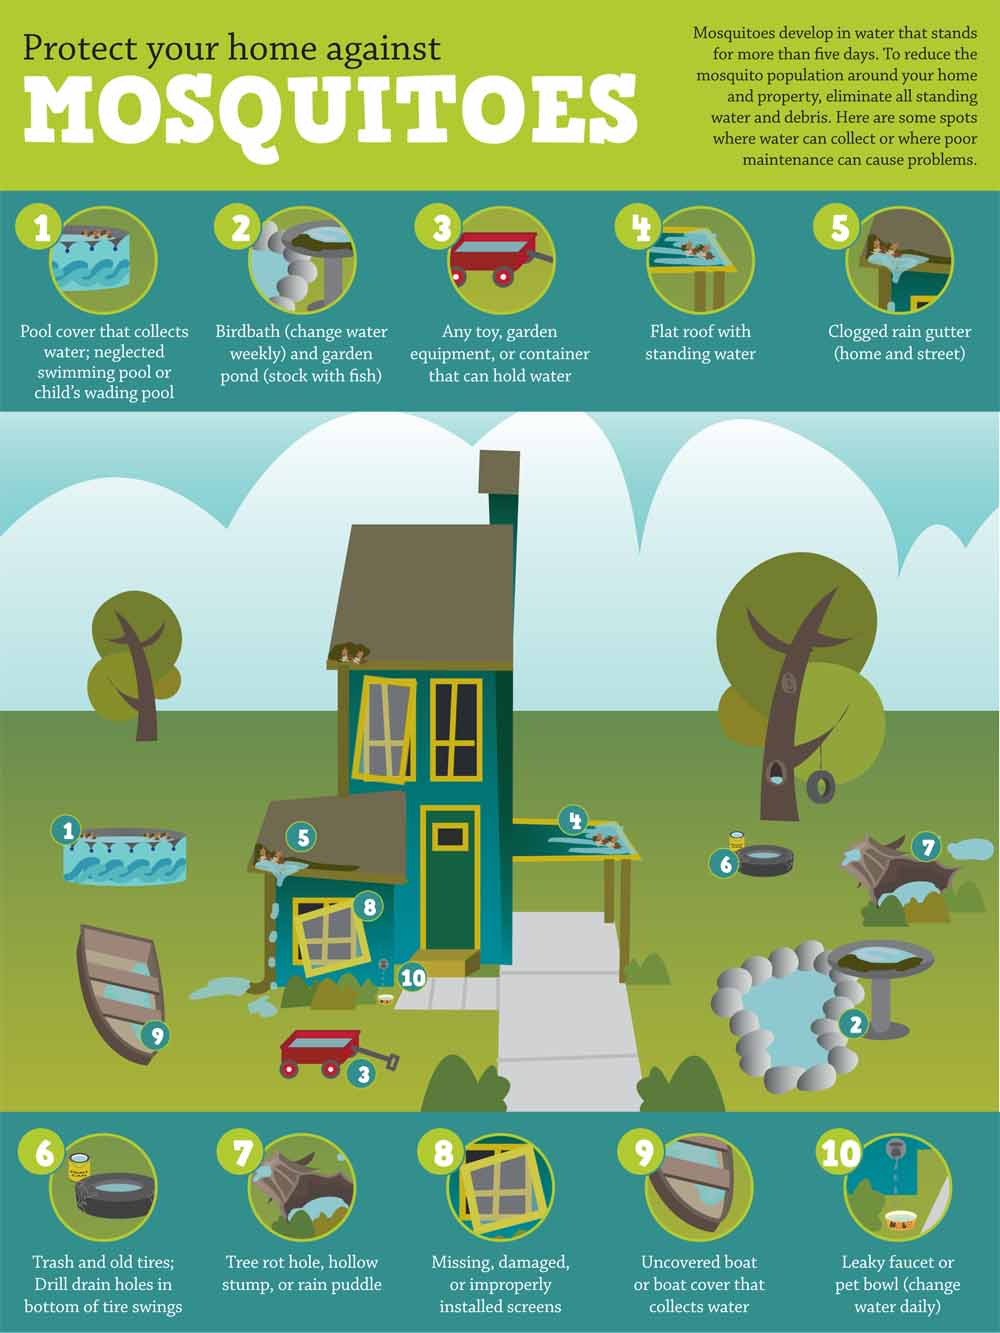 Protect Your Home Against Mosquitoes